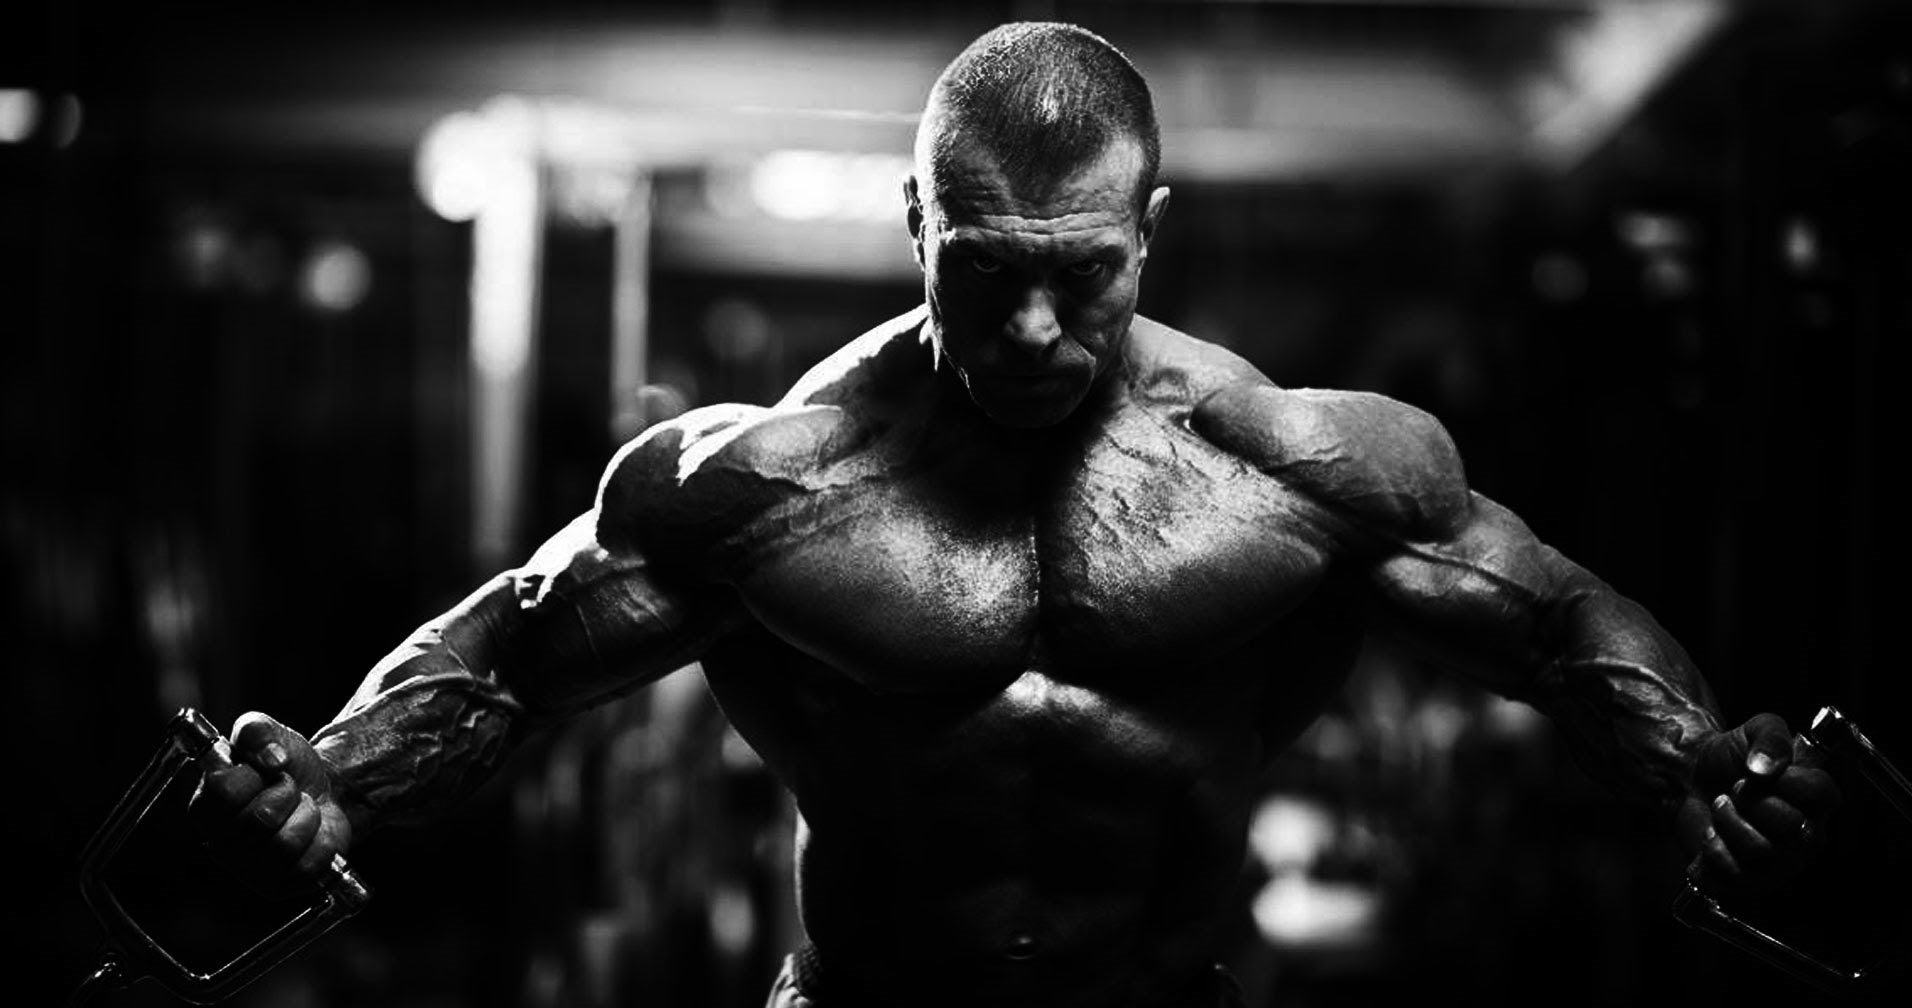 anabolic steroids | Men's Health And Bodybuilding